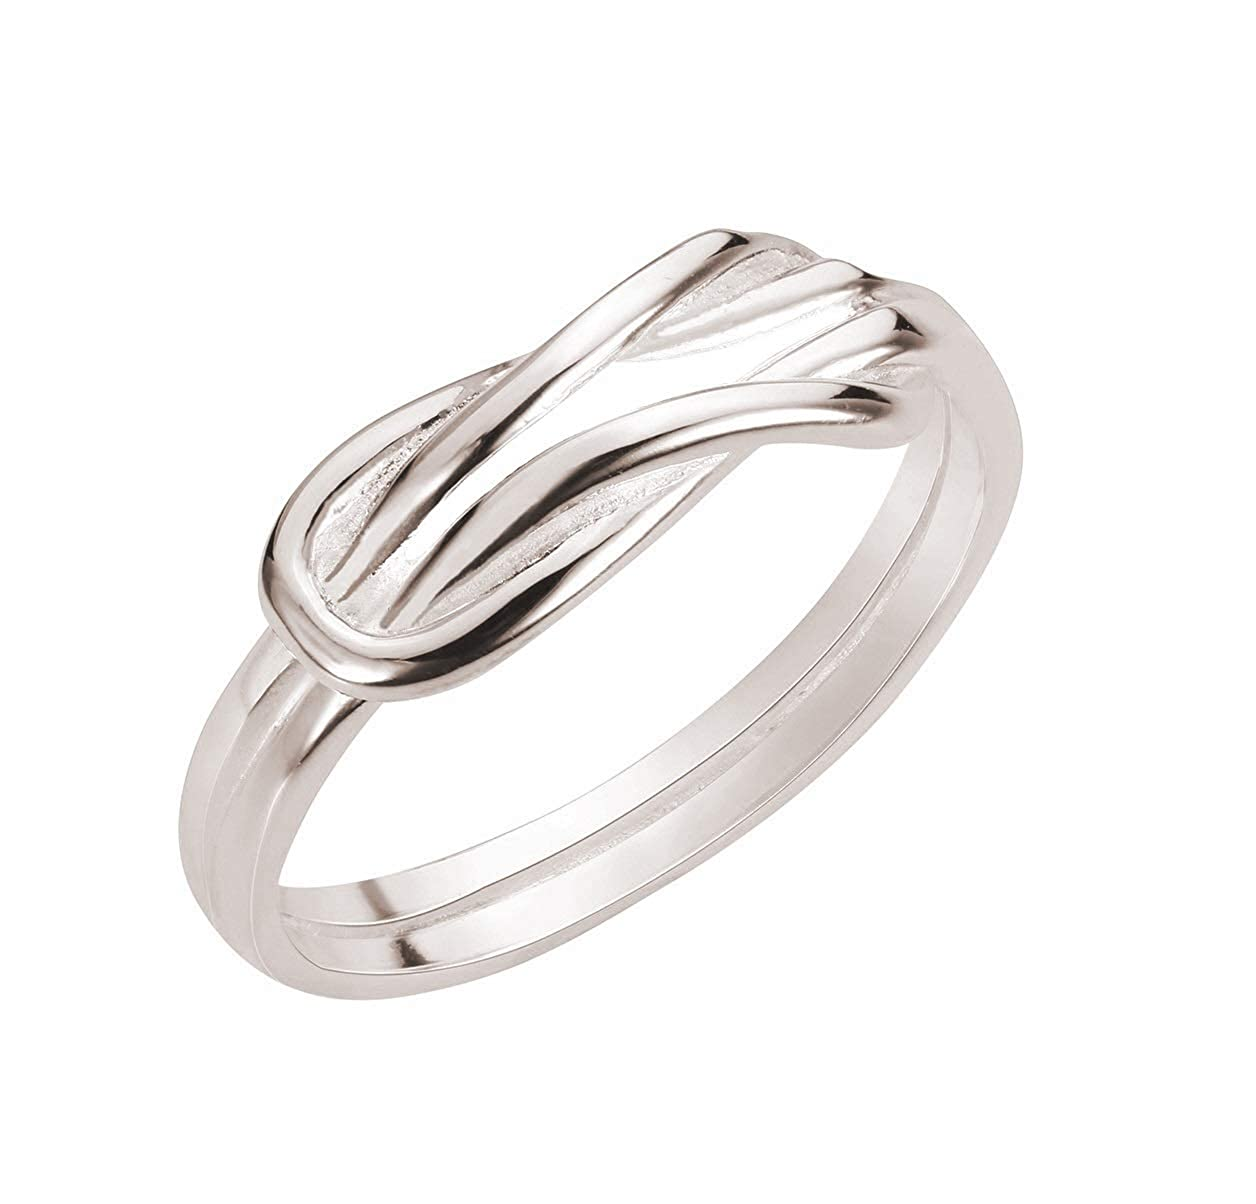 CloseoutWarehouse Sterling Silver Infinity Promise Knot Ring (Color Options, Sizes 2-13)